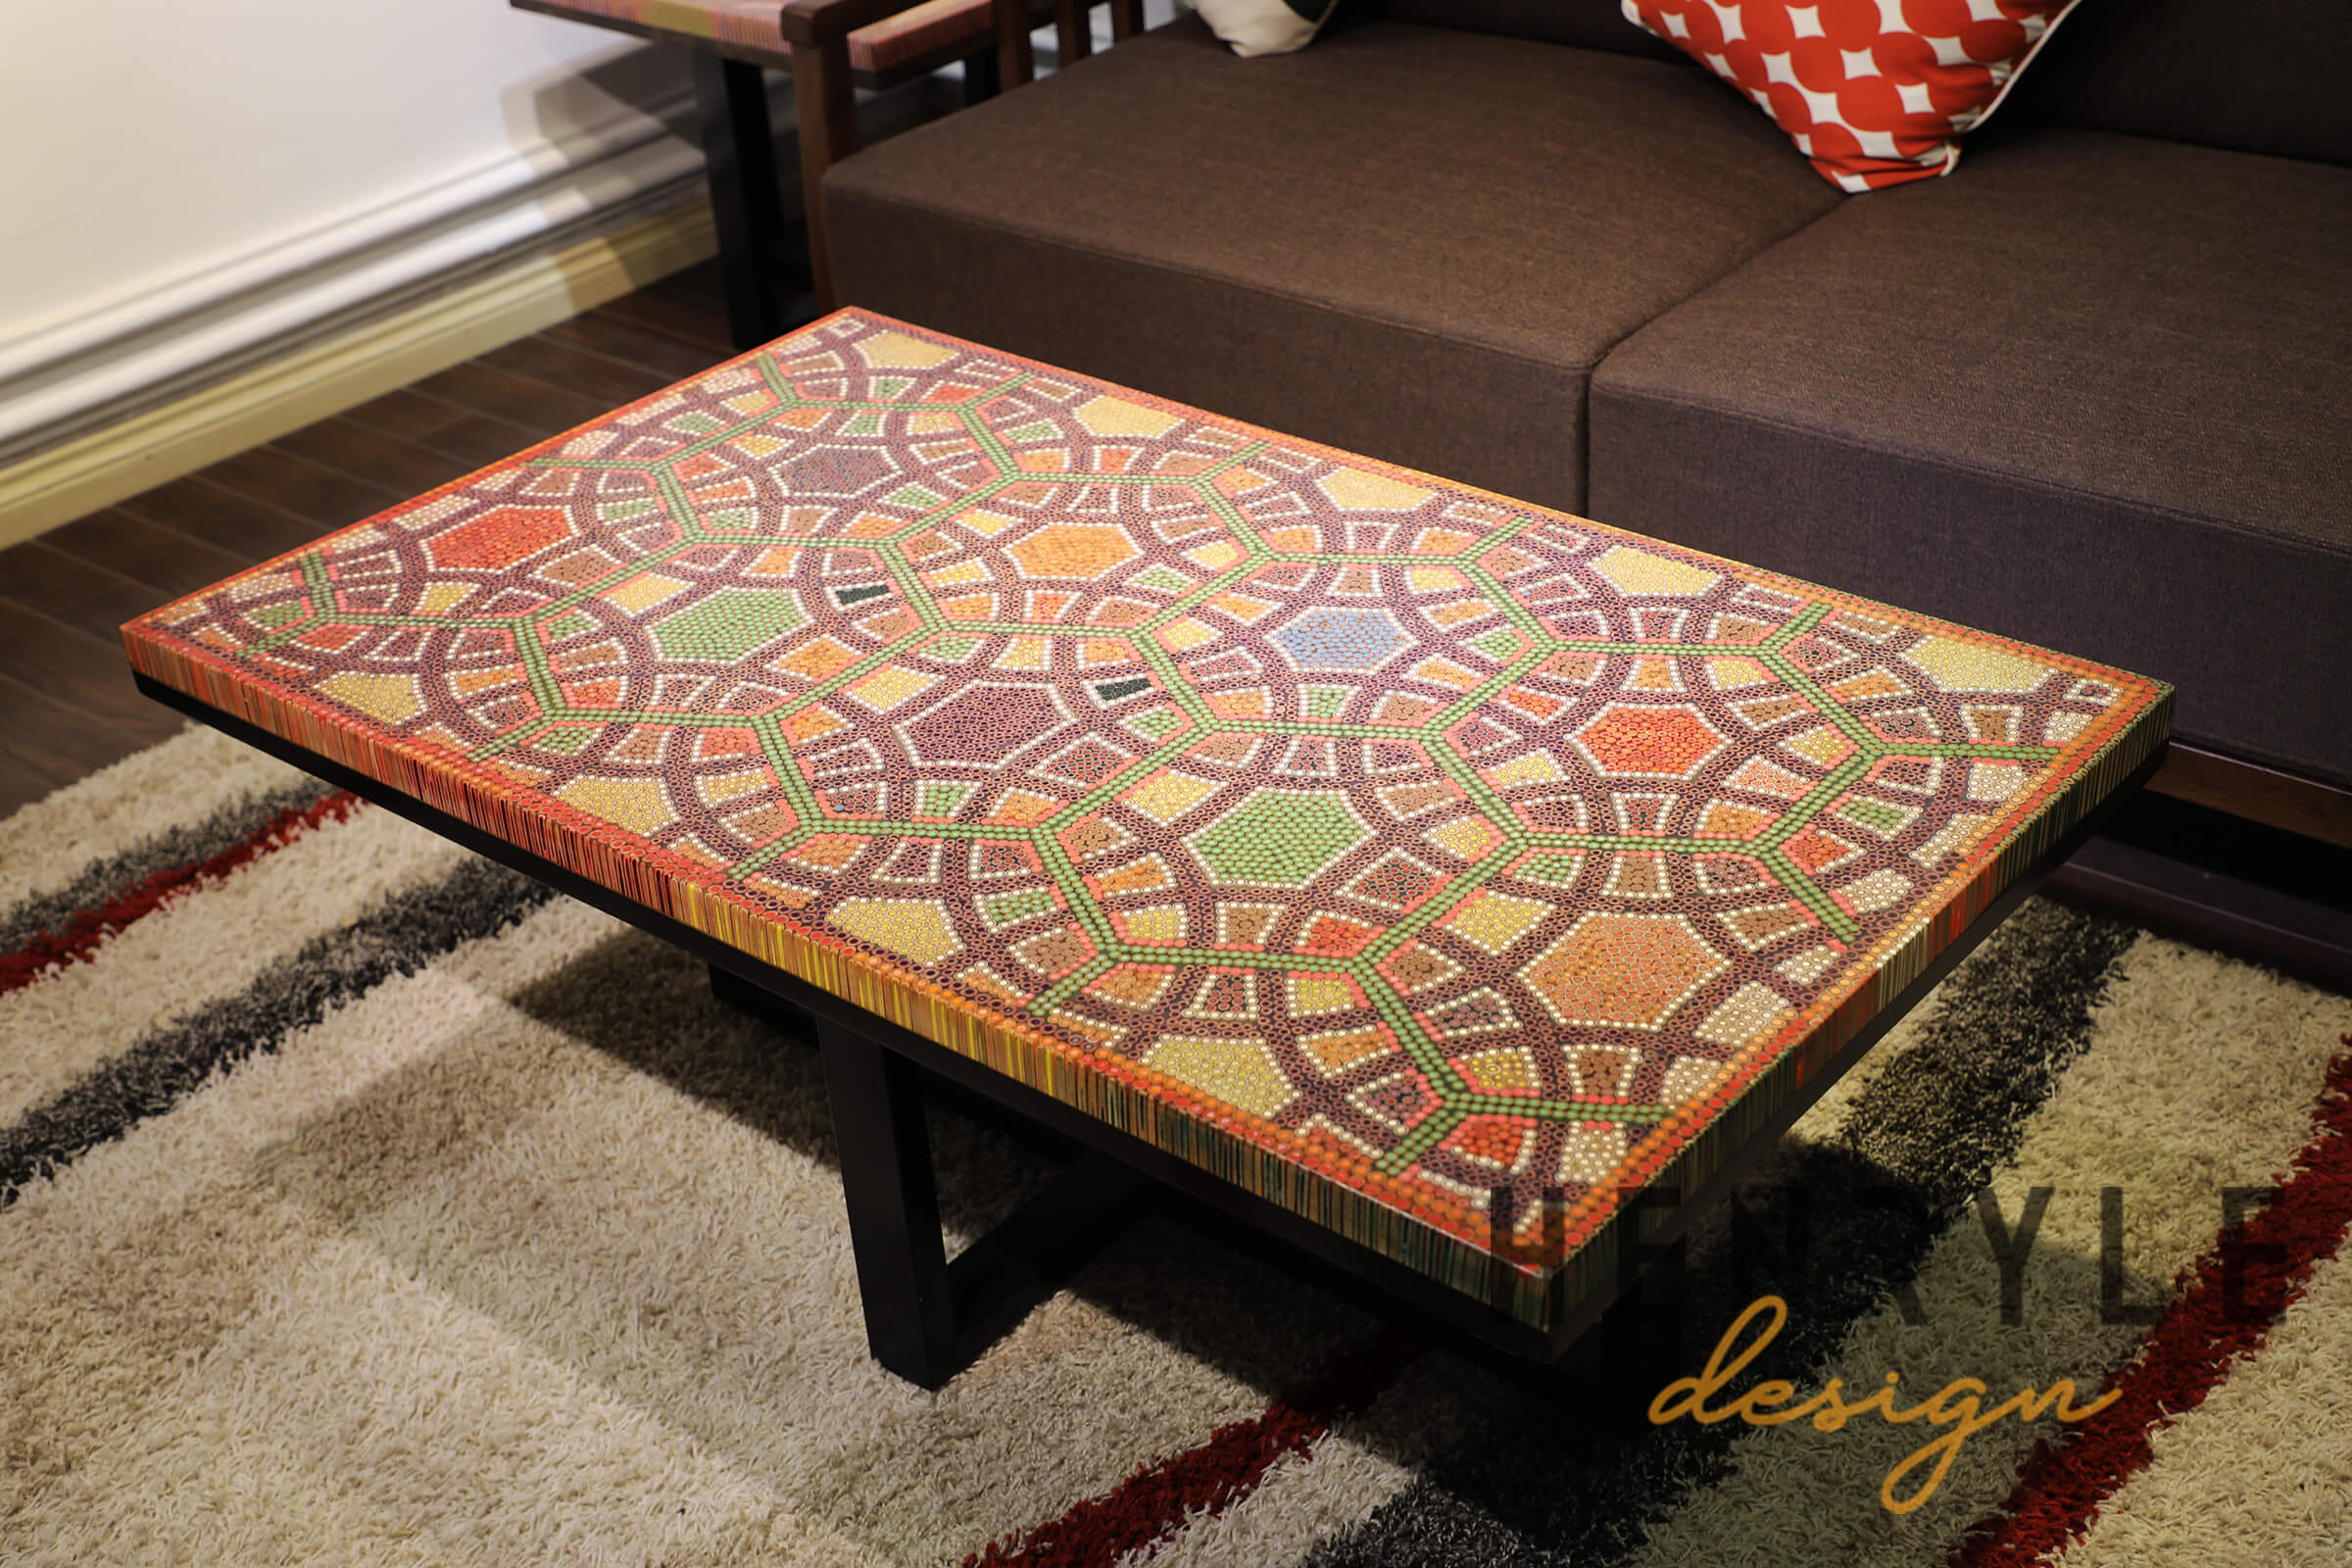 - Infinity & Beyond Colored-Pencil Coffee Table - Unique Coffee Tables